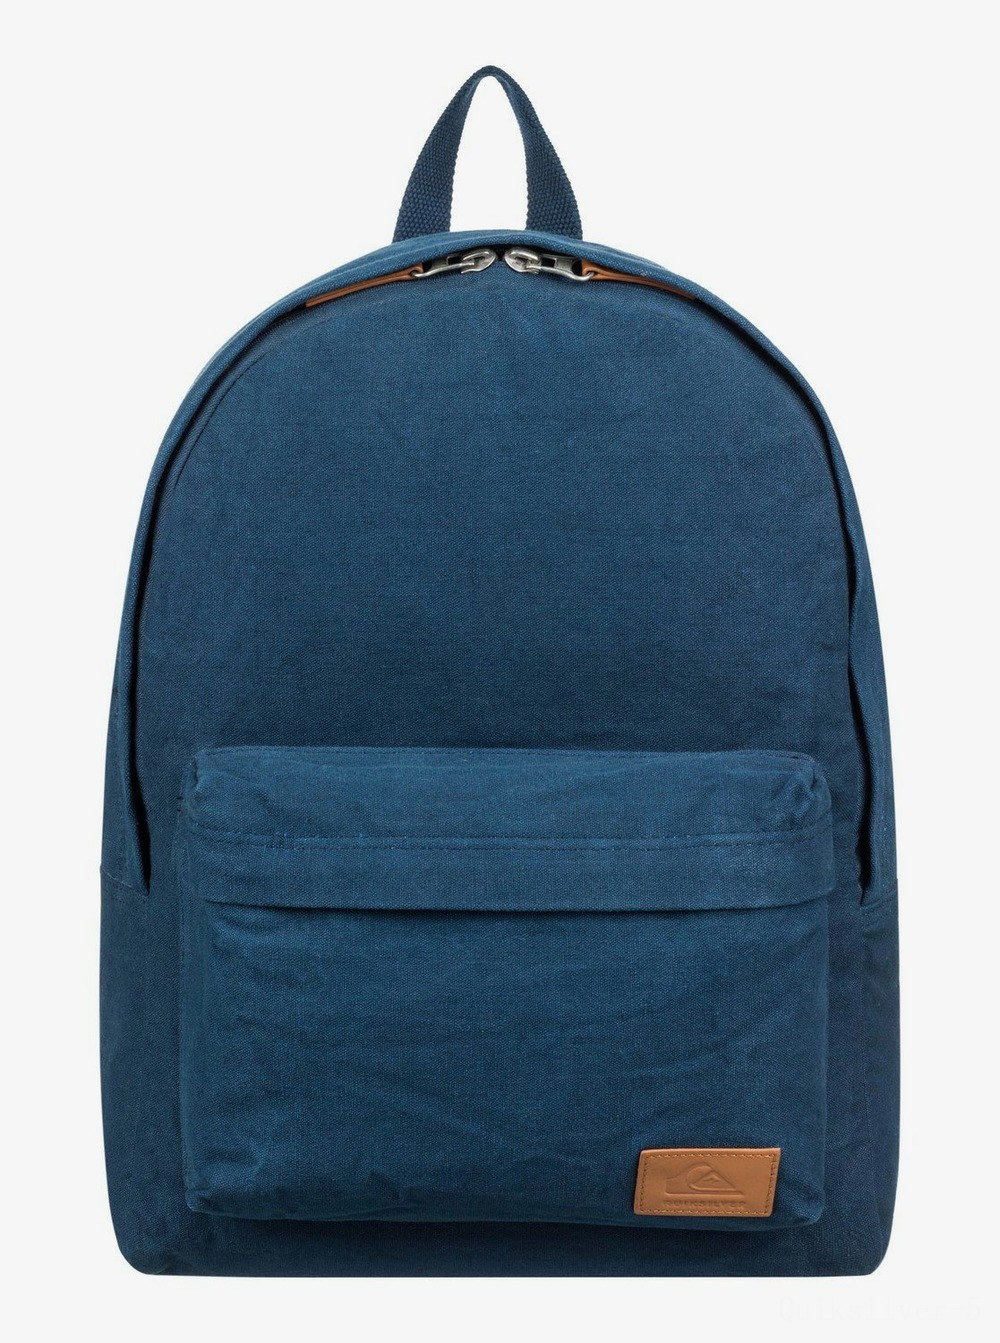 best price everyday poster canvas 25l medium backpack - moonlit ocean last chance limited sale